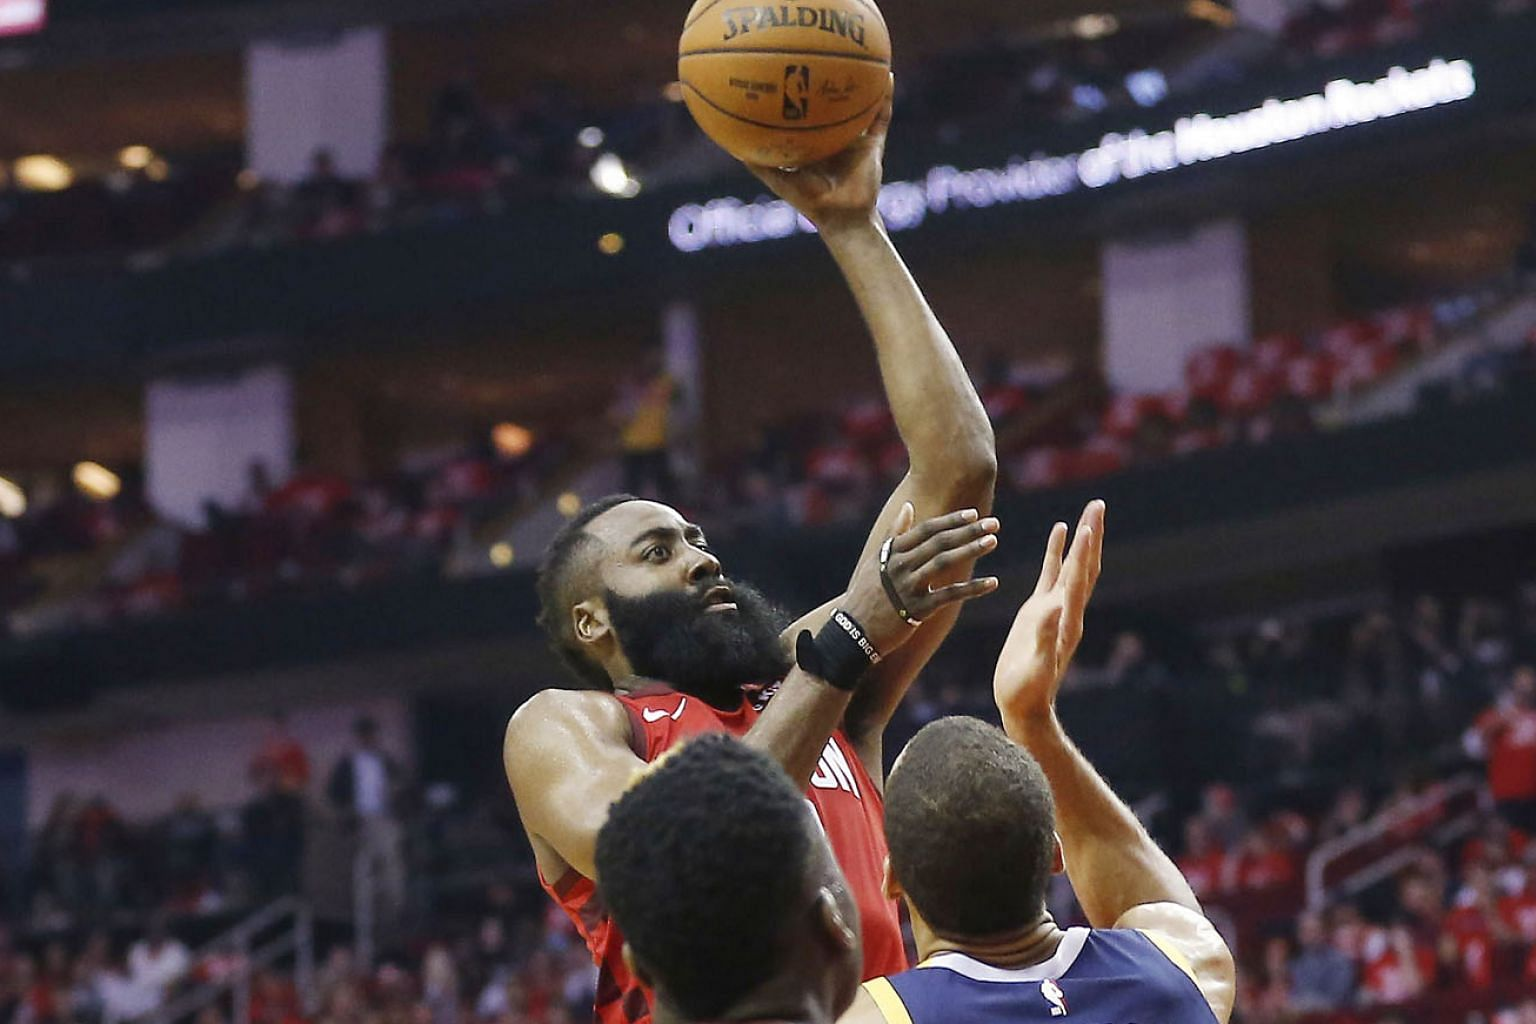 Houston's James Harden driving to the basket over Rudy Gobert of Utah Jazz as Clint Capela and Ricky Rubio look on during Game 2 of their National Basketball Association first-round play-off series at the Toyota Centre on Wednesday. The Rockets won 1